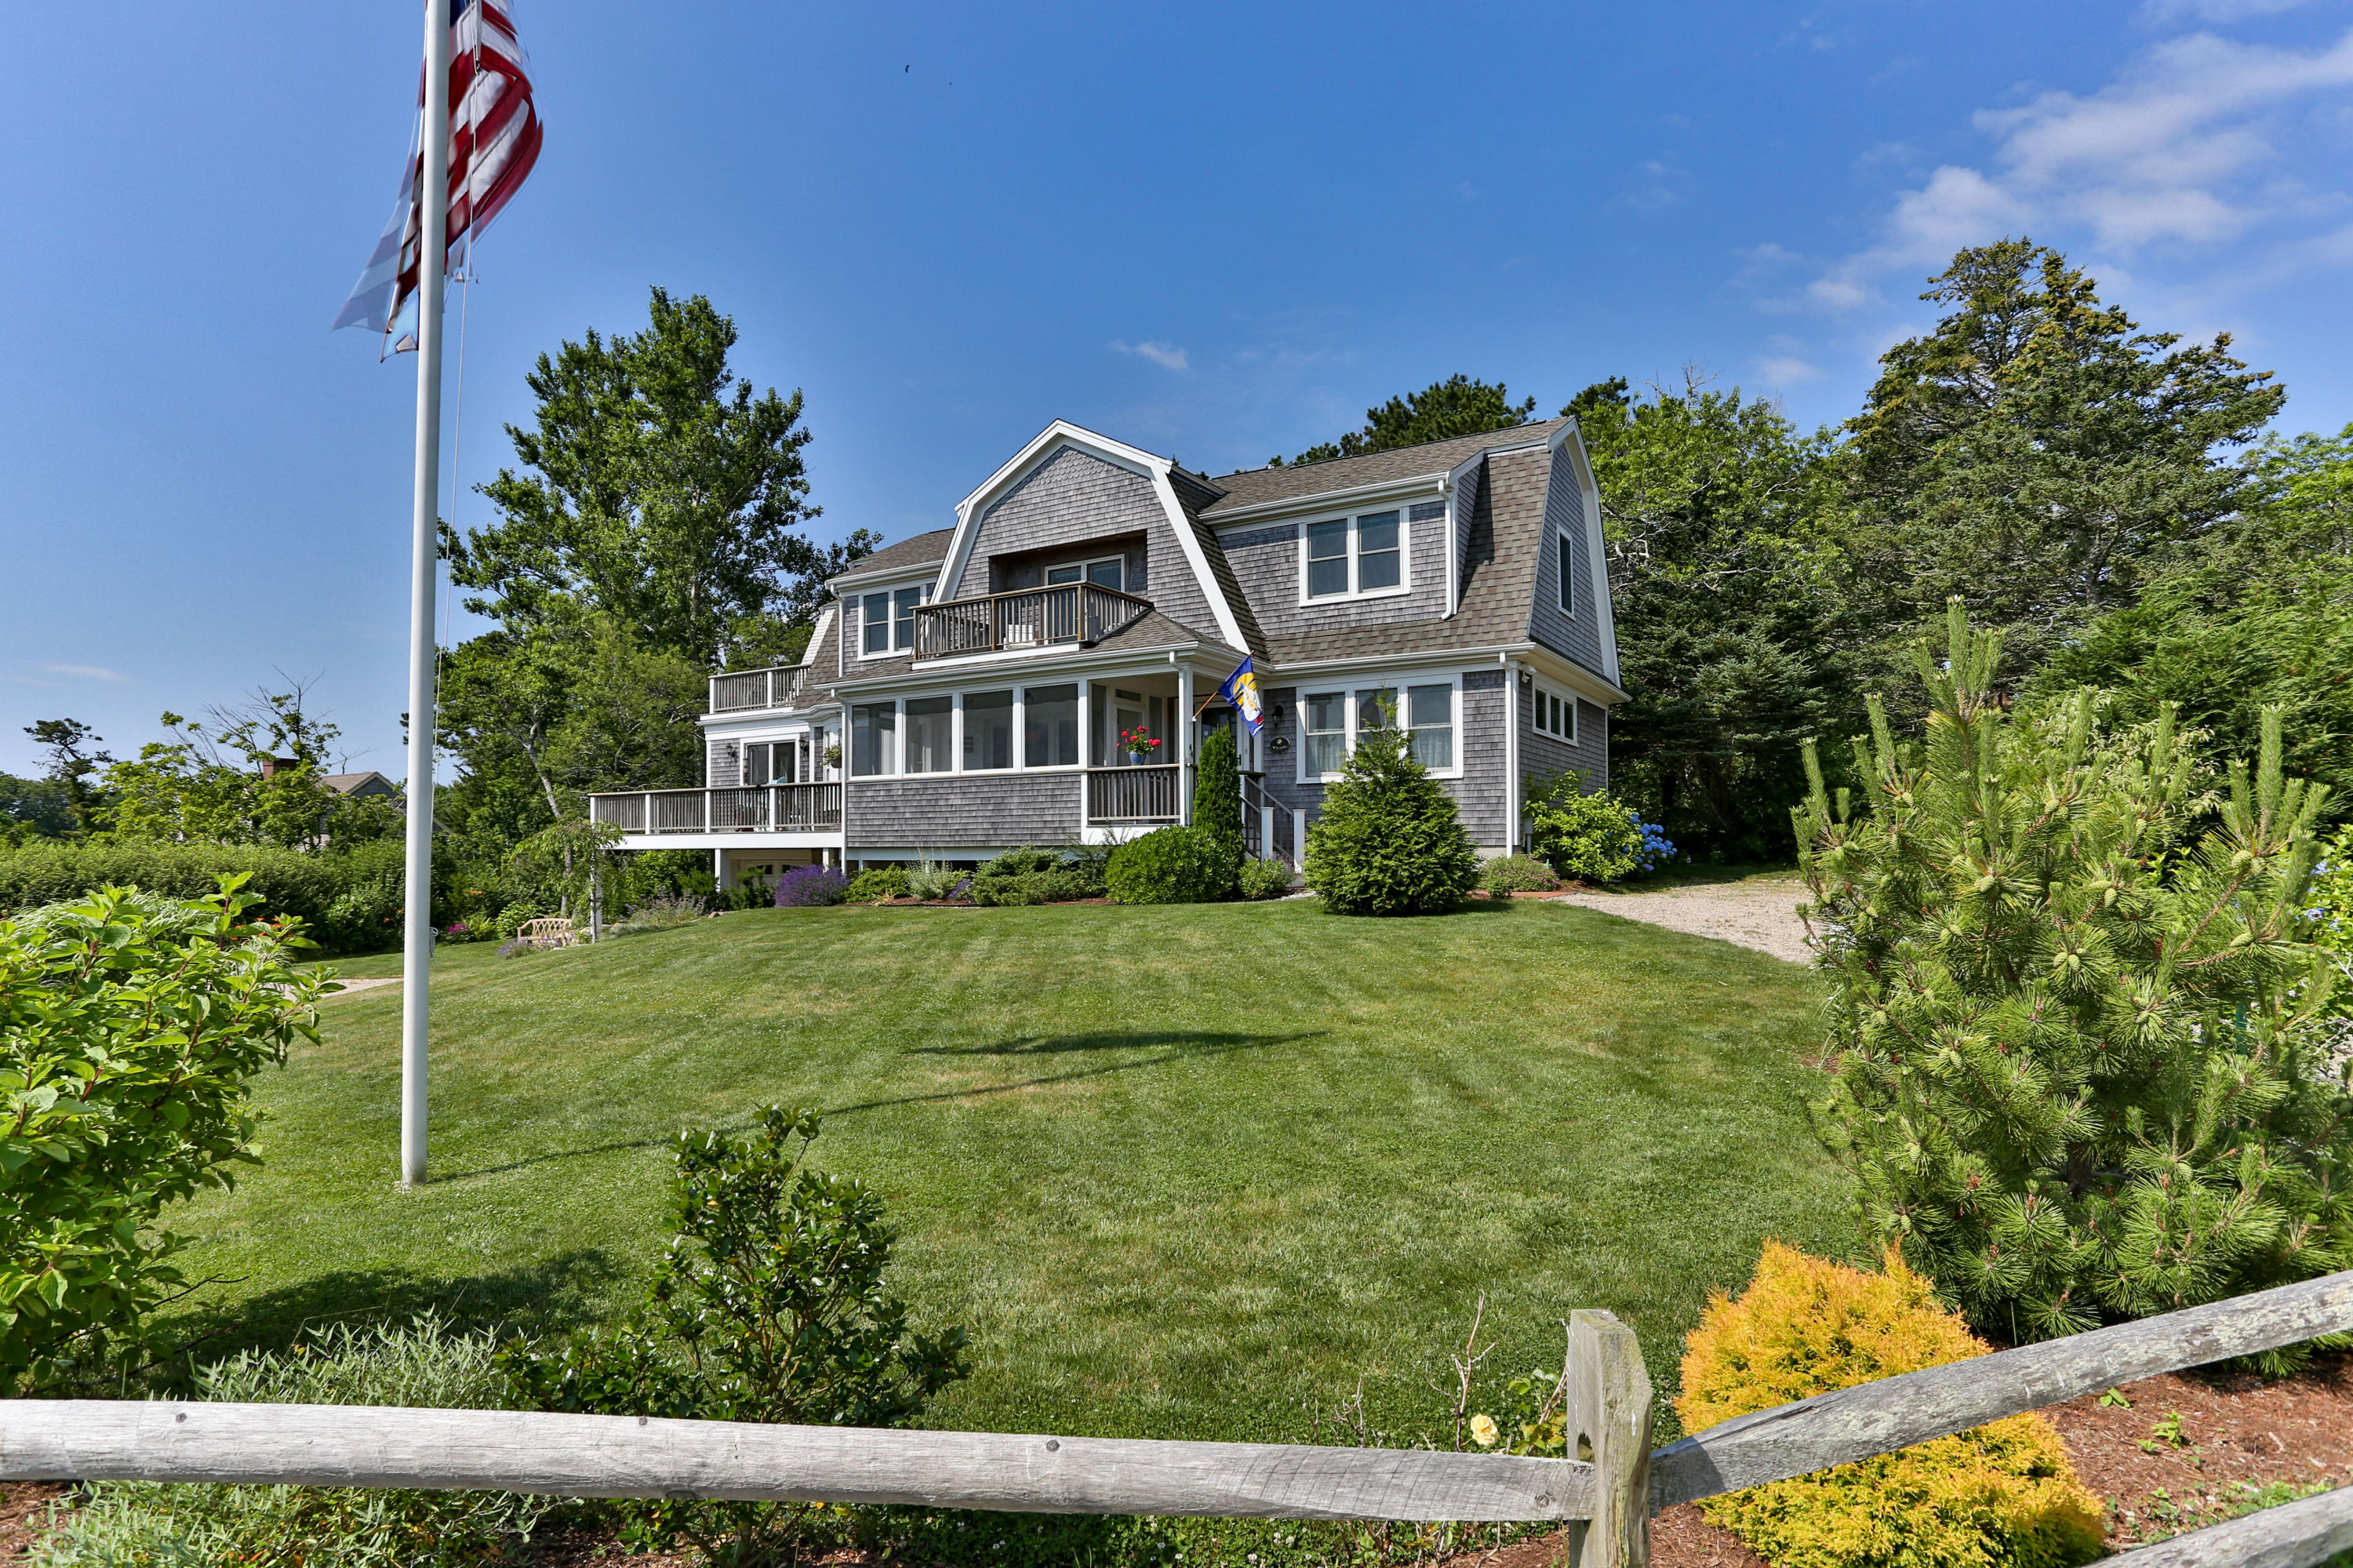 44-scatteree-road-north-chatham-ma-02650